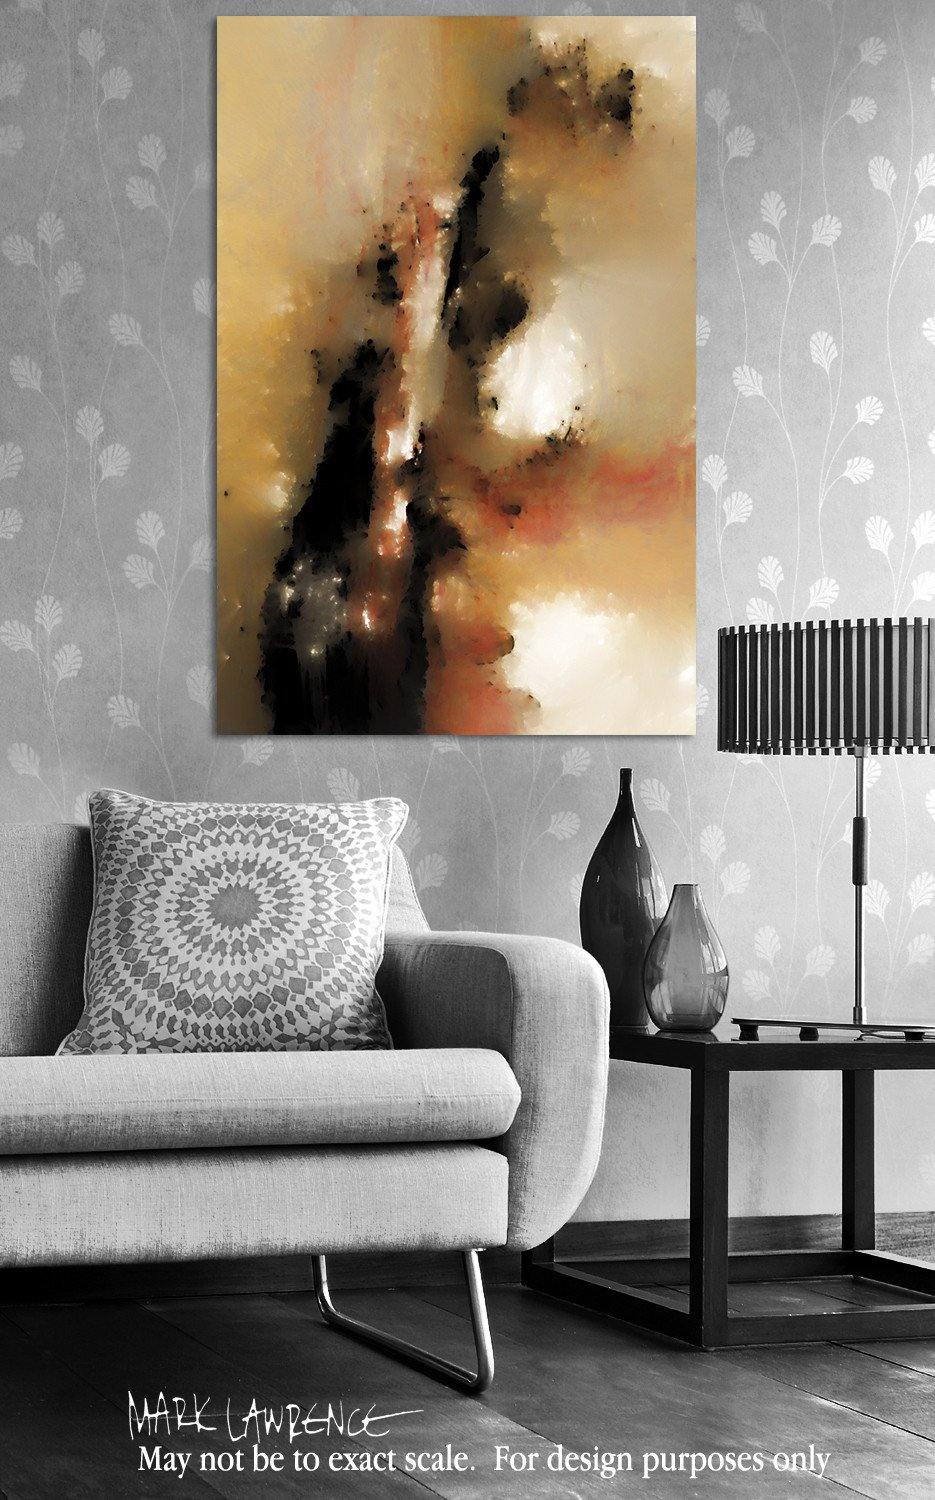 Interior Design Focal Point Art Inspiration- Christian Art-Hebrews 10:19. Versevisions inspirational abstract art by Mark Lawrence. Artist Direct- Original limited edition signed canvas & paper giclees